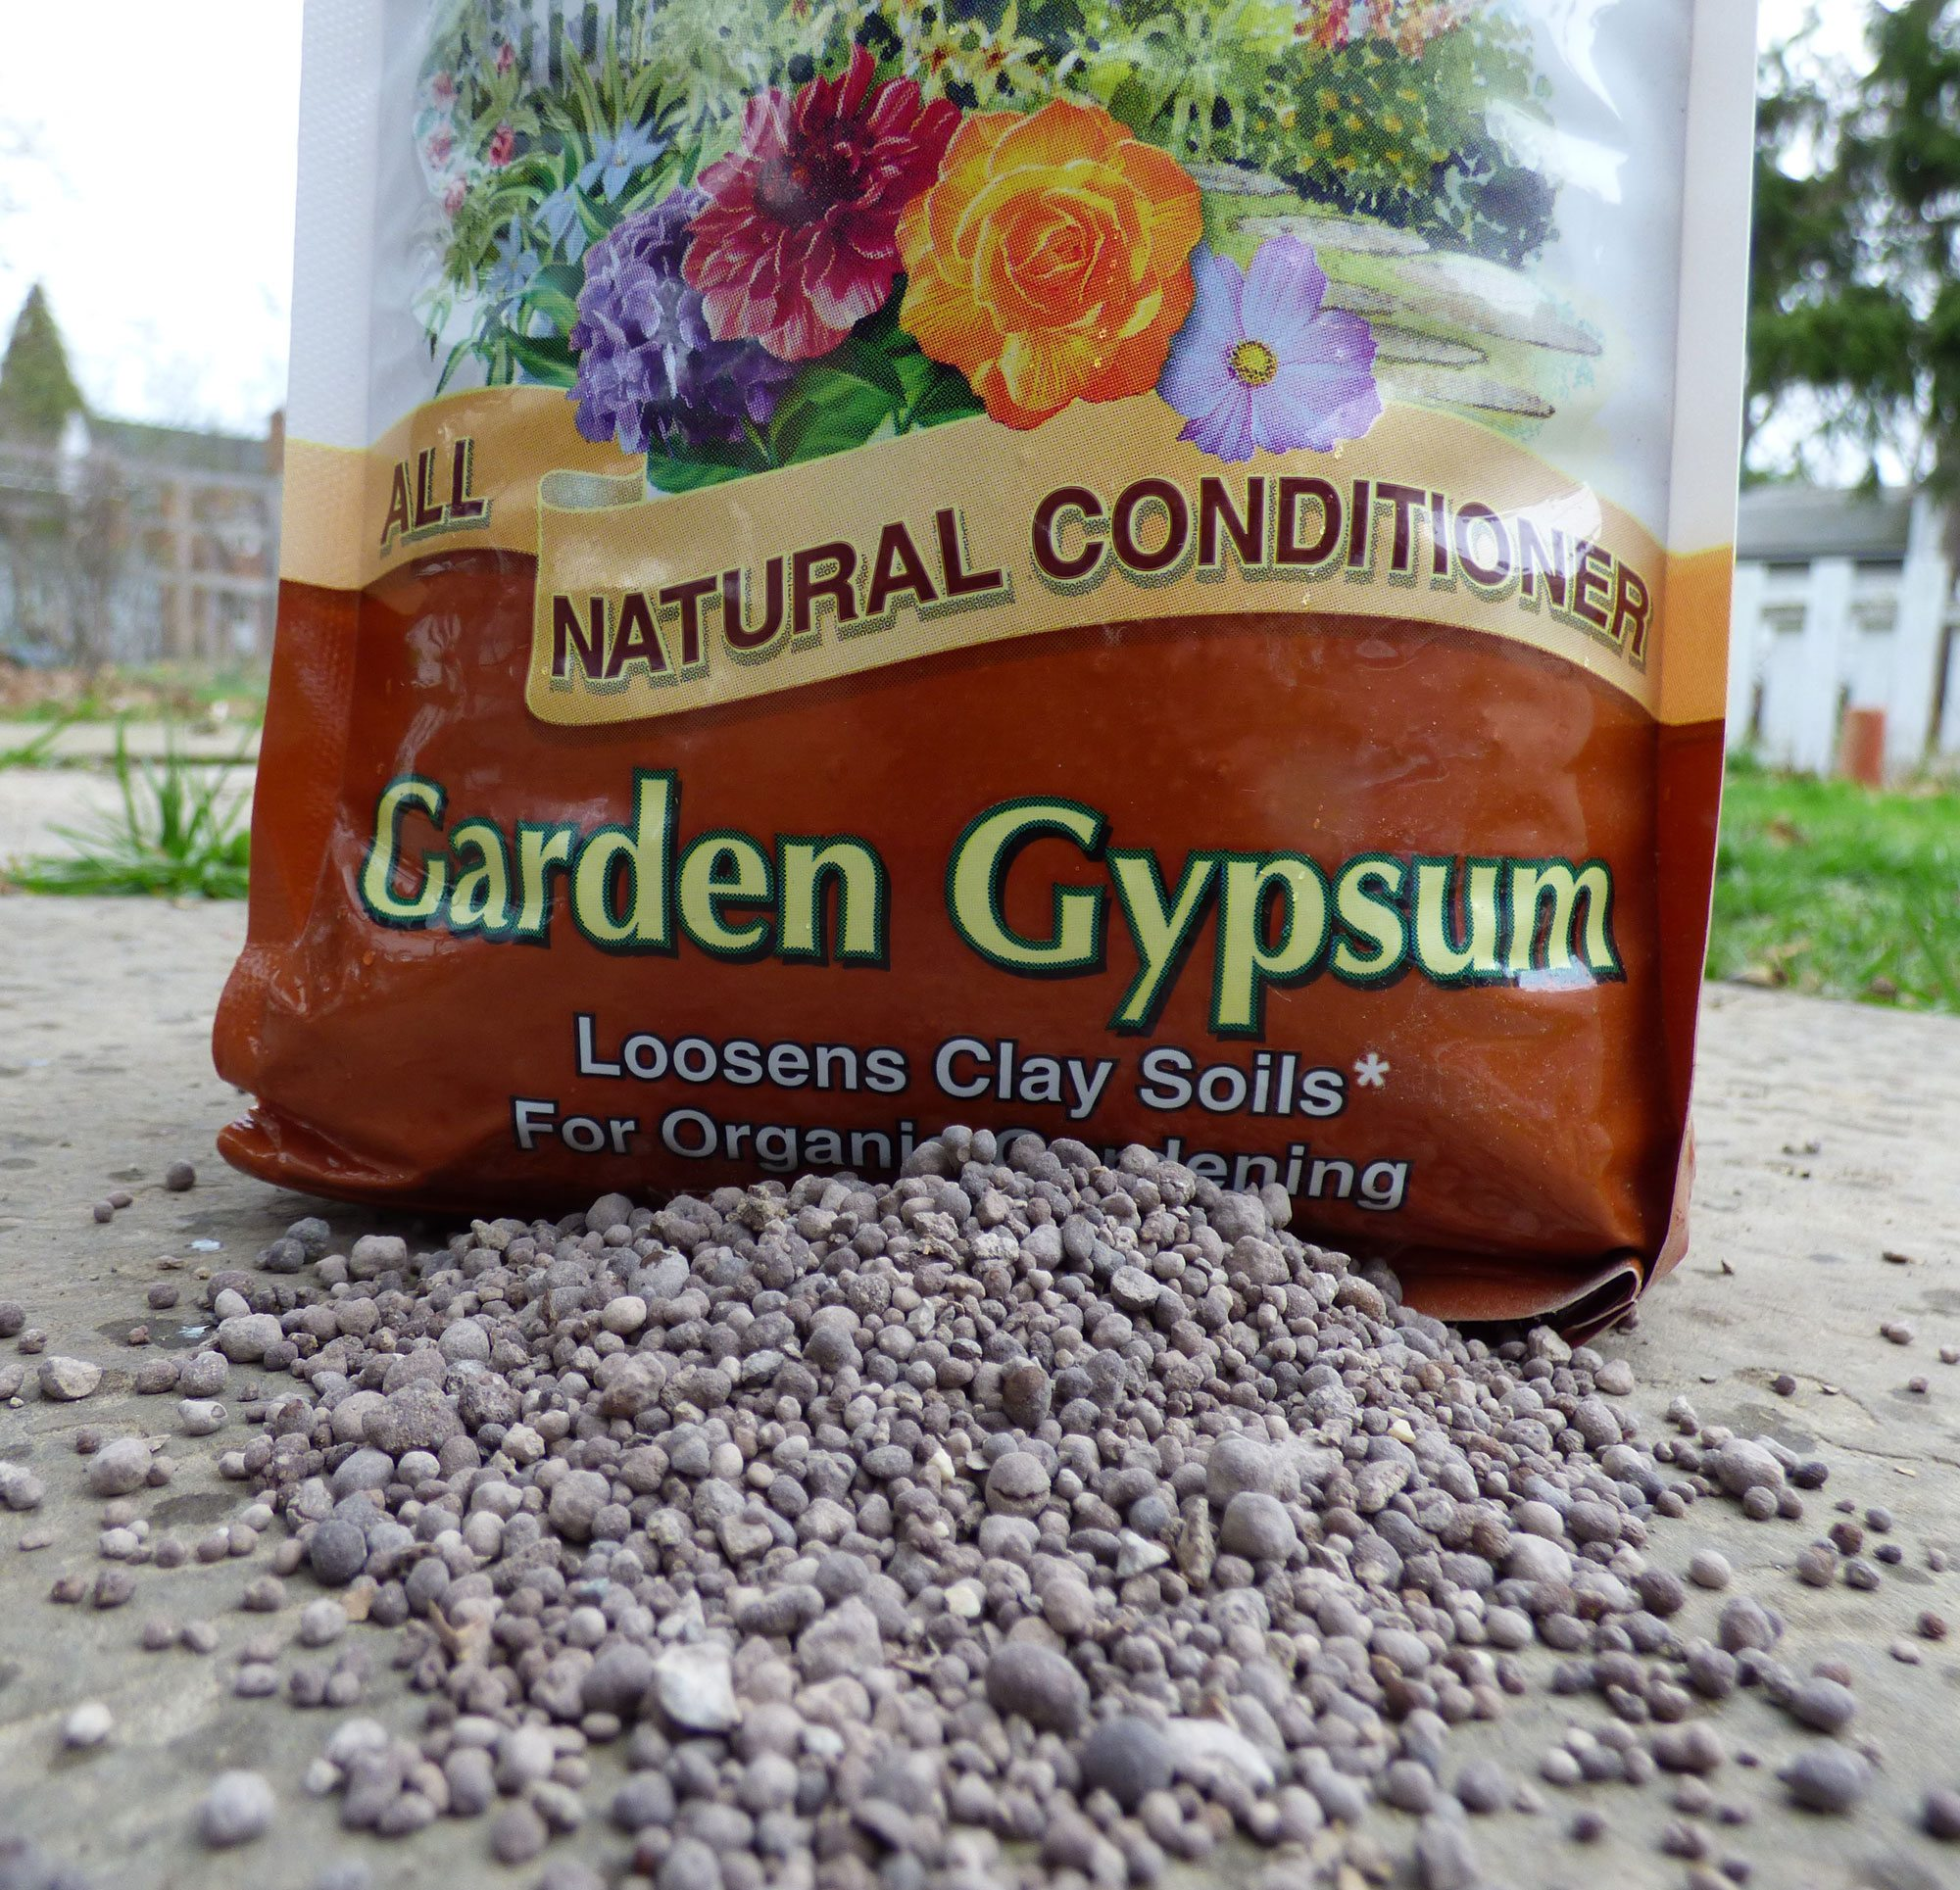 garden gypsum information is gypsum good for the soil - Garden Gypsum